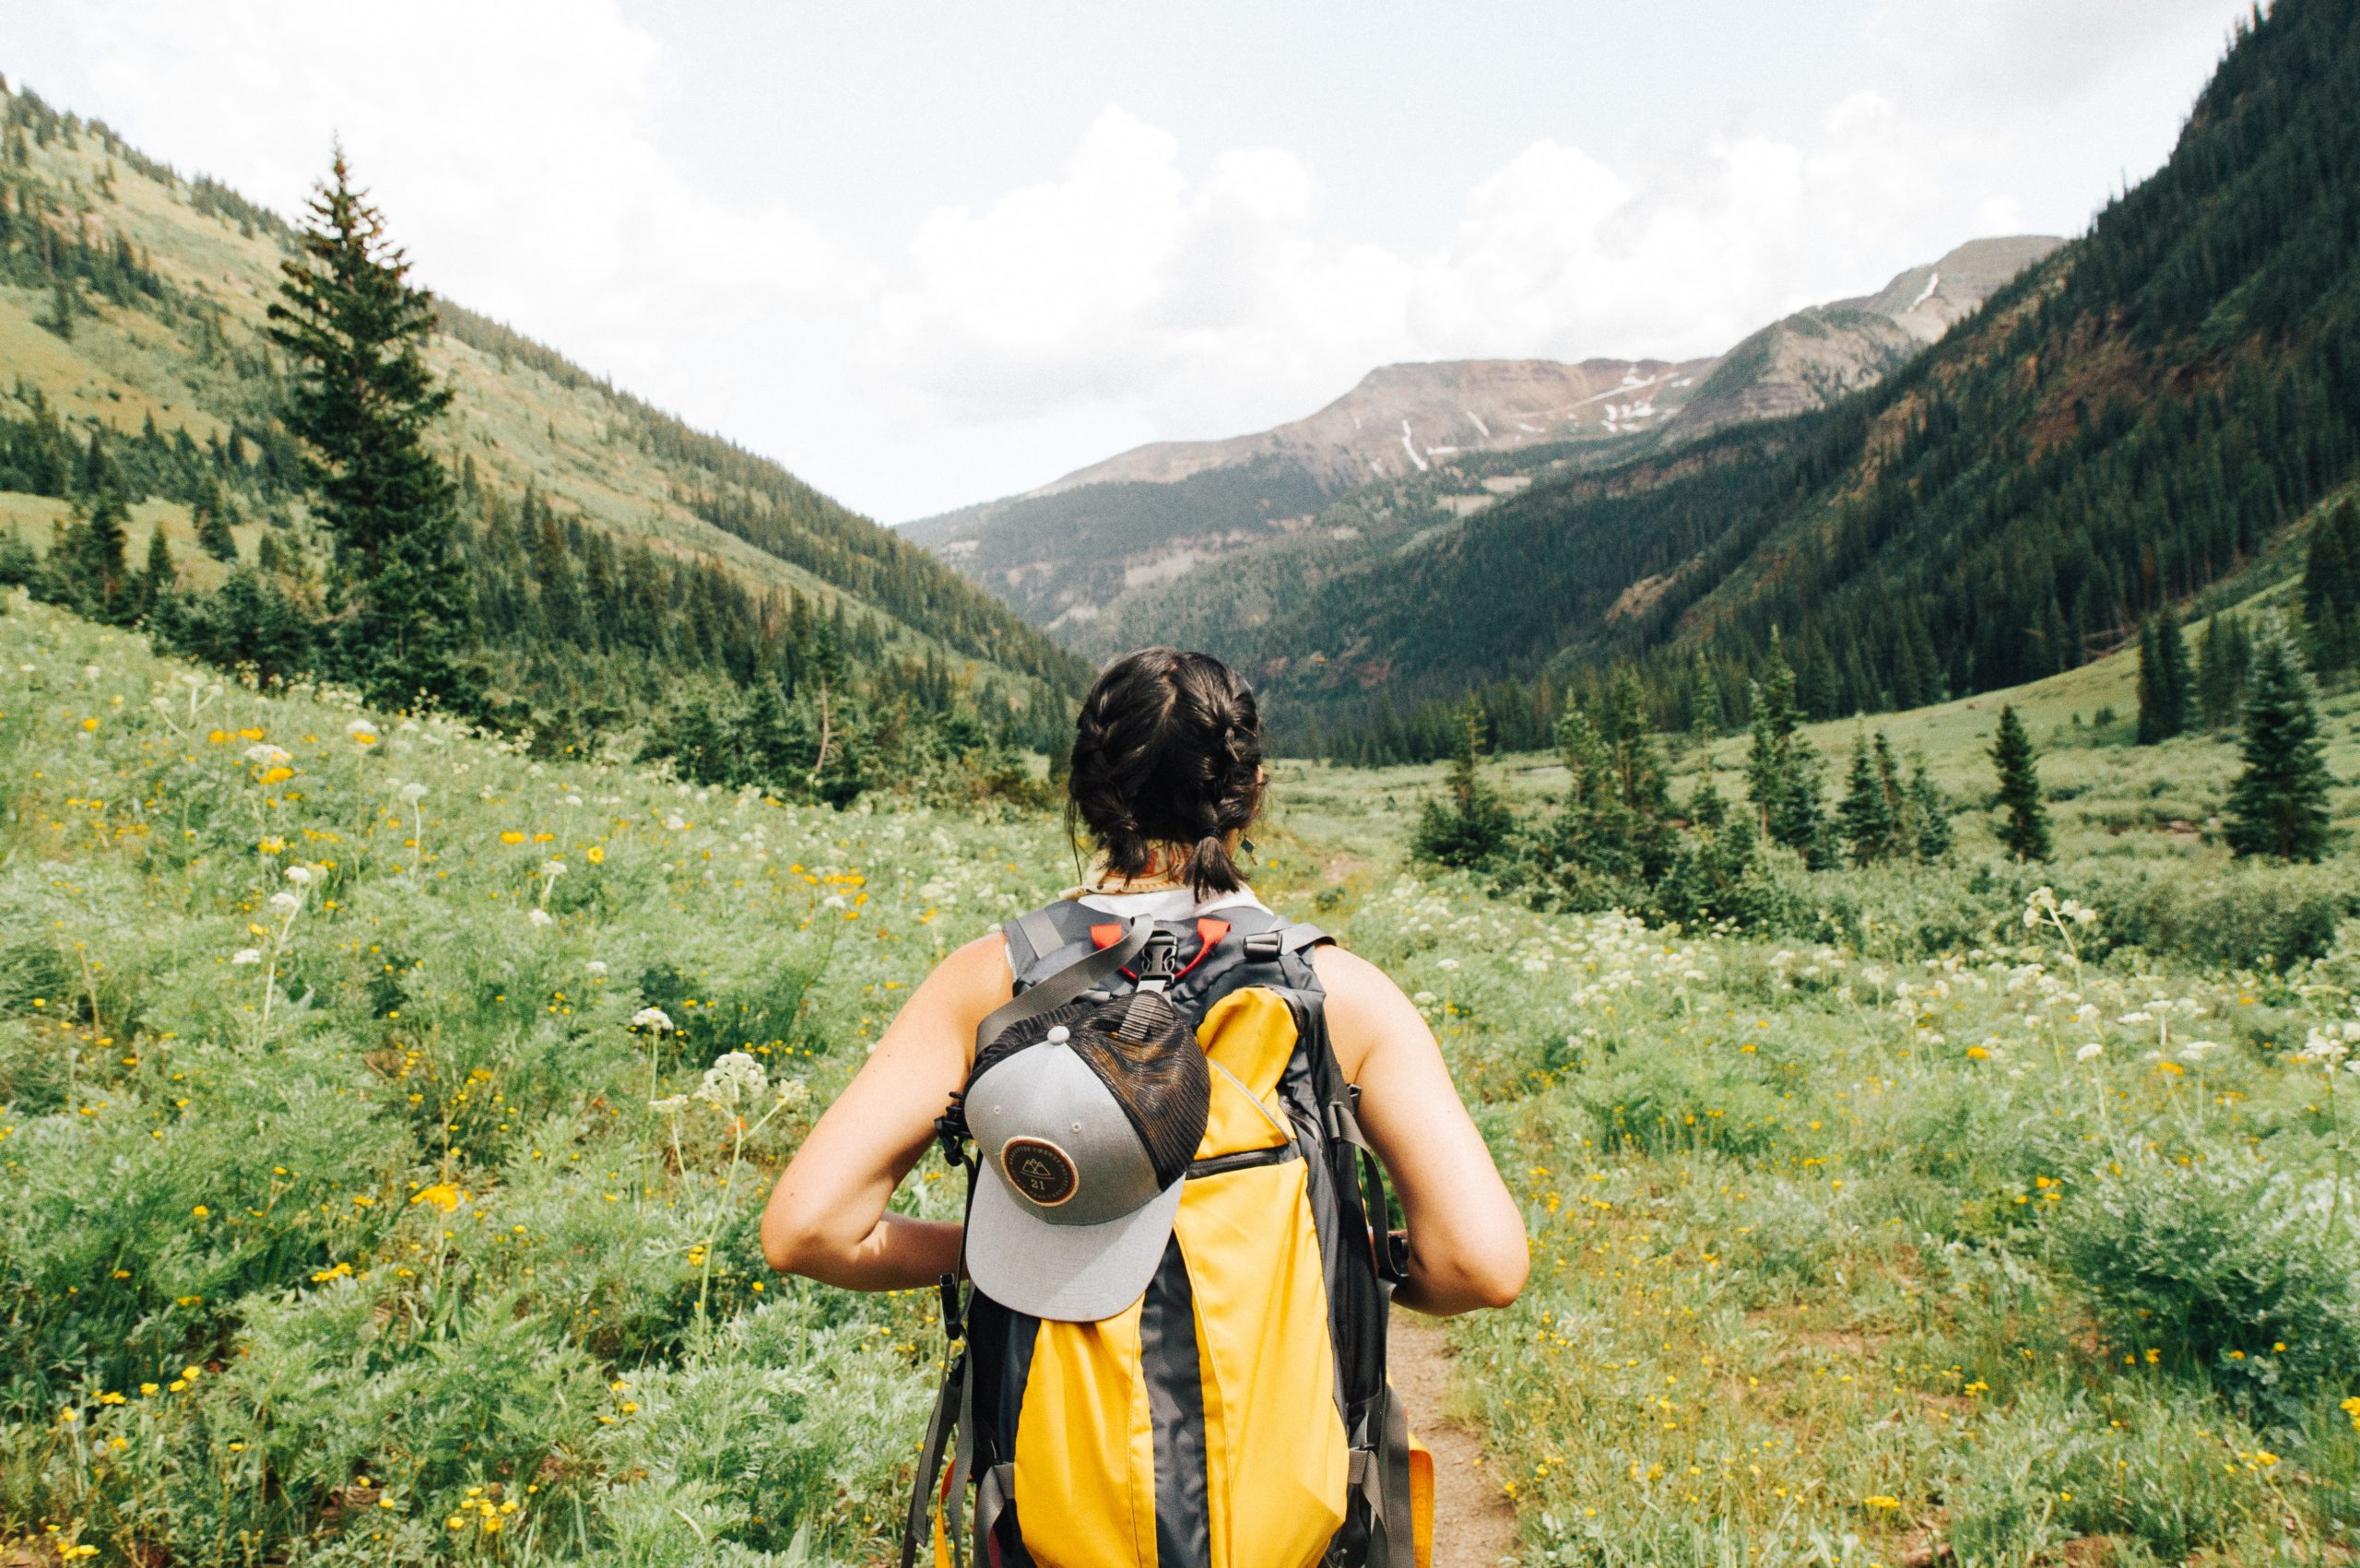 Thumb image for the post on The Benefits of Wilderness Therapy